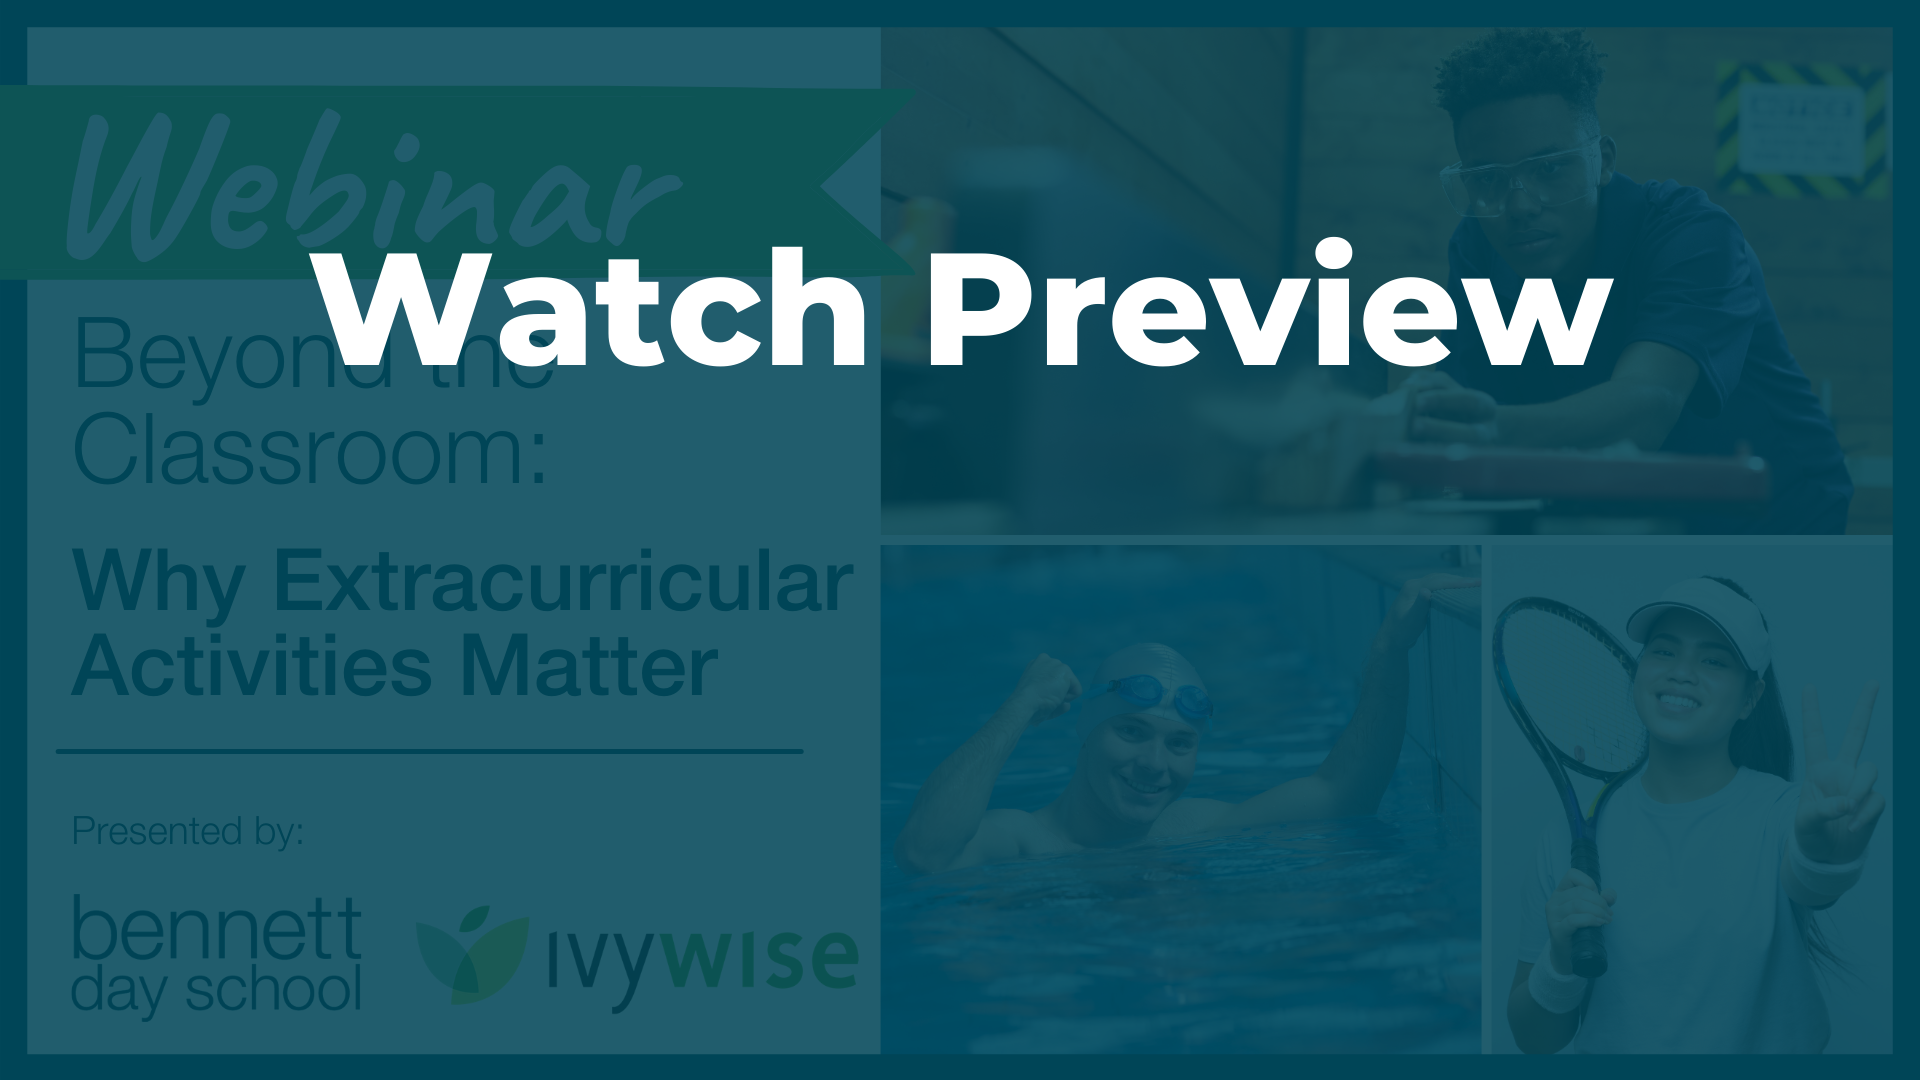 IvyWise Webinar Preview